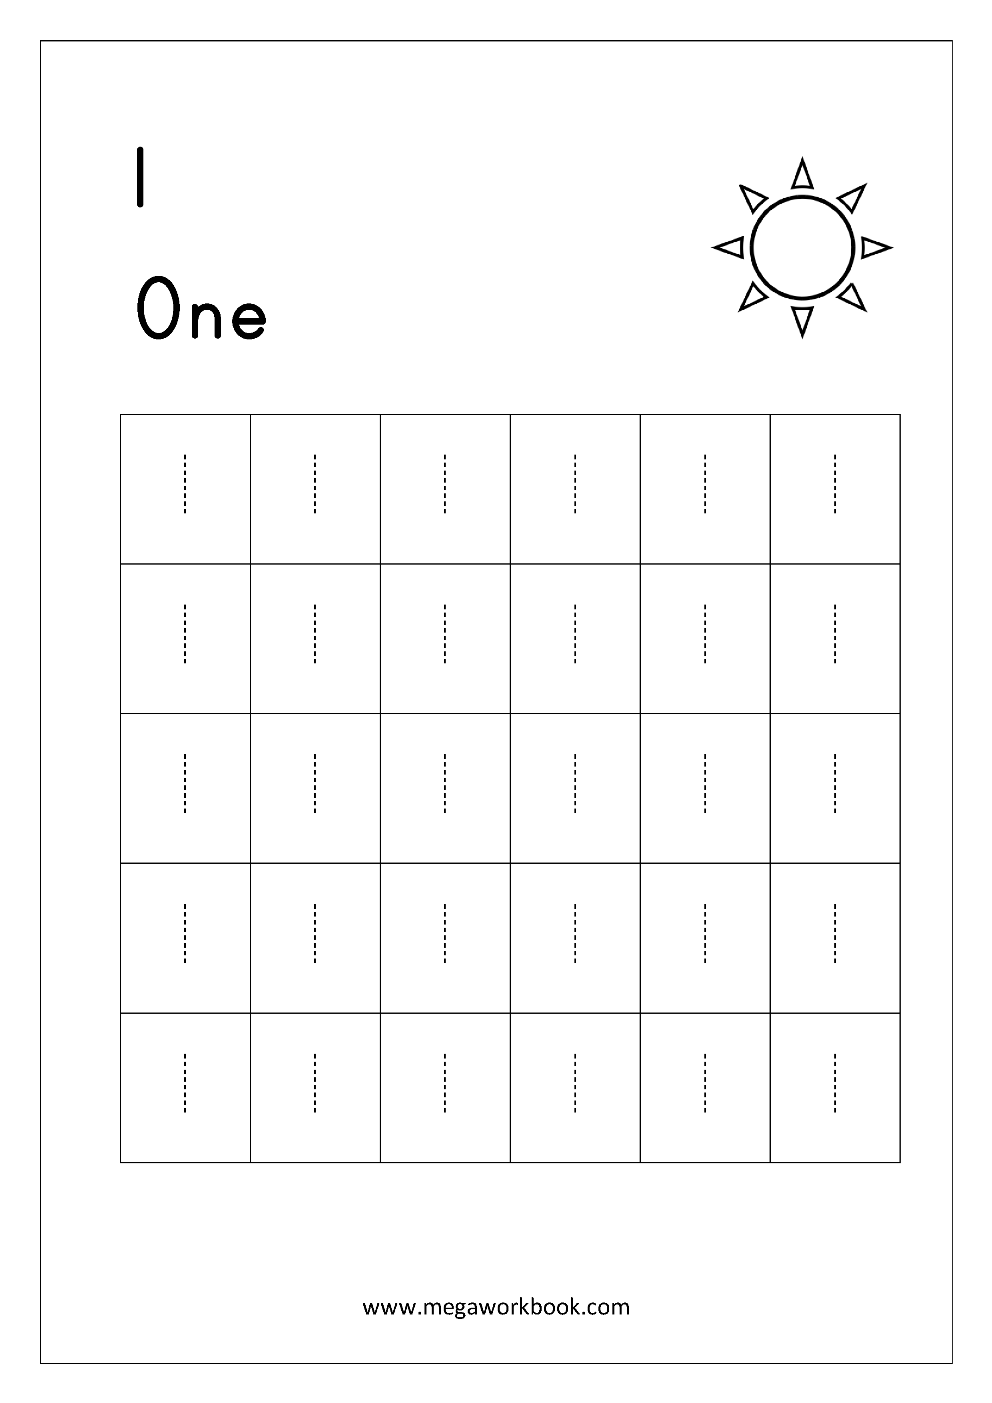 - Math Worksheet - Trace Number One (1) .. #68189 - PNG Images - PNGio